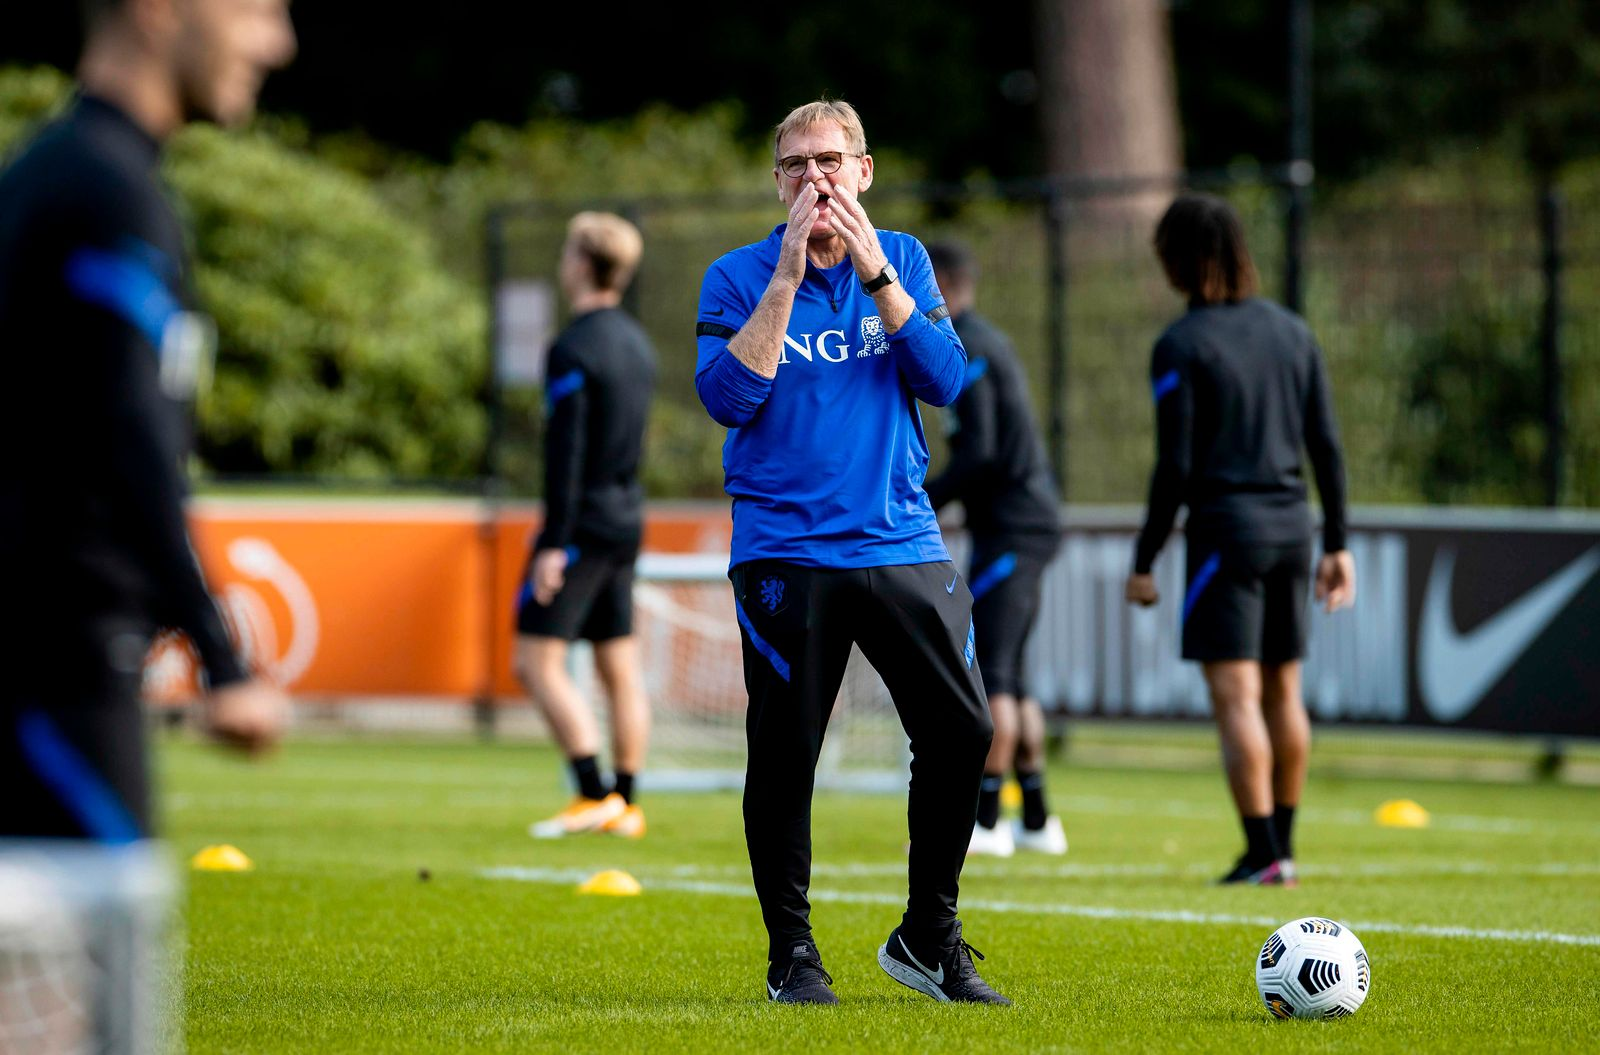 FBL-NATIONS-EUR-NED-TRAINING